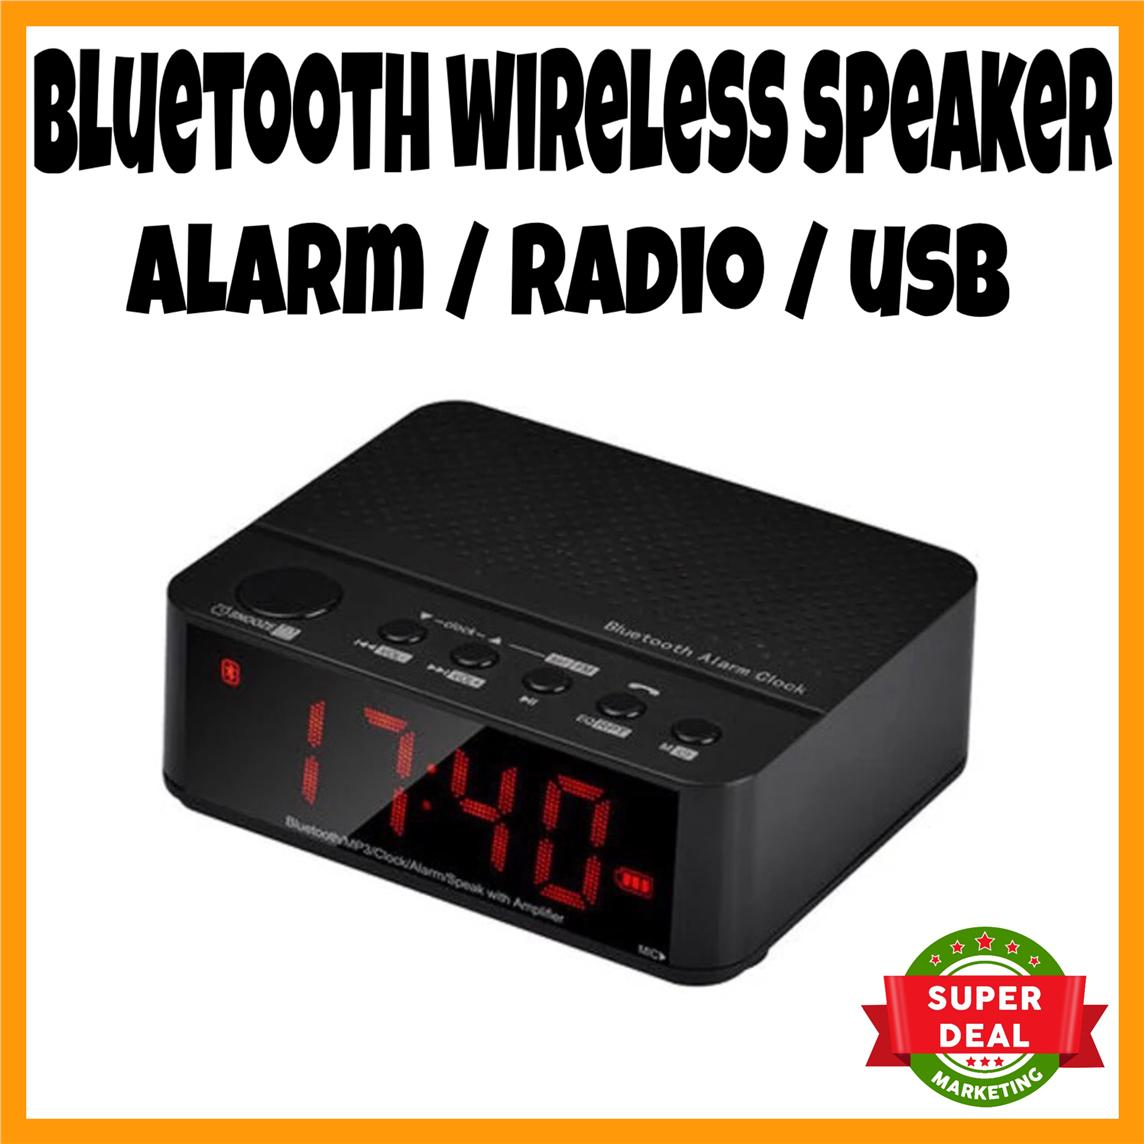 bluetooth speaker wireless with ala end 3 31 2018 11 15 pm. Black Bedroom Furniture Sets. Home Design Ideas